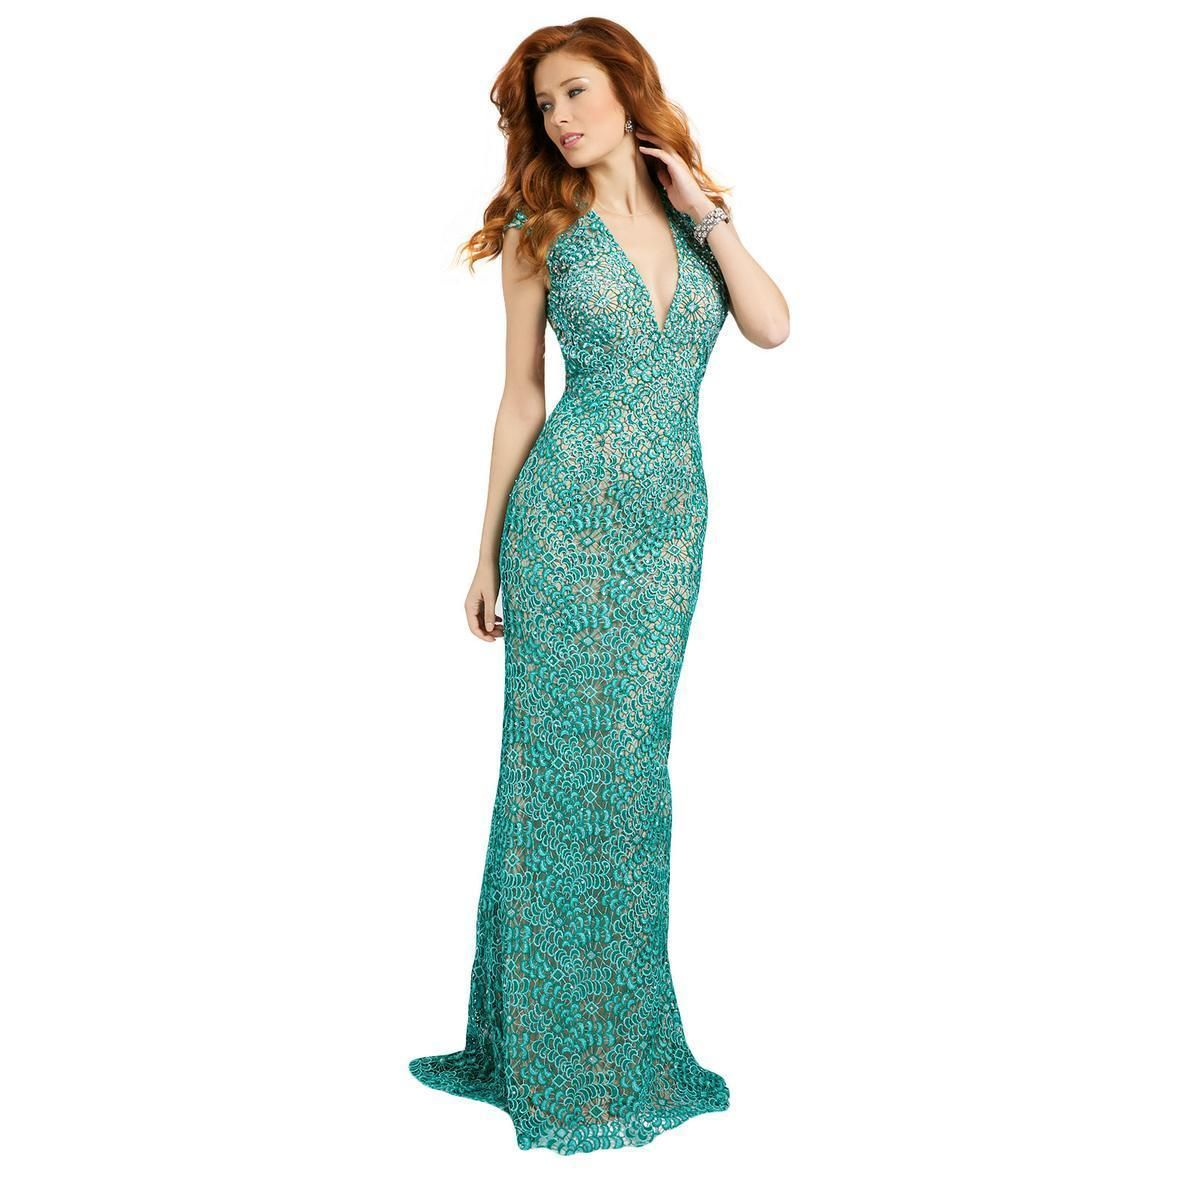 Cool Awesome New JOVANI Teal Green Lace Mesh Formal Prom Pageant ...